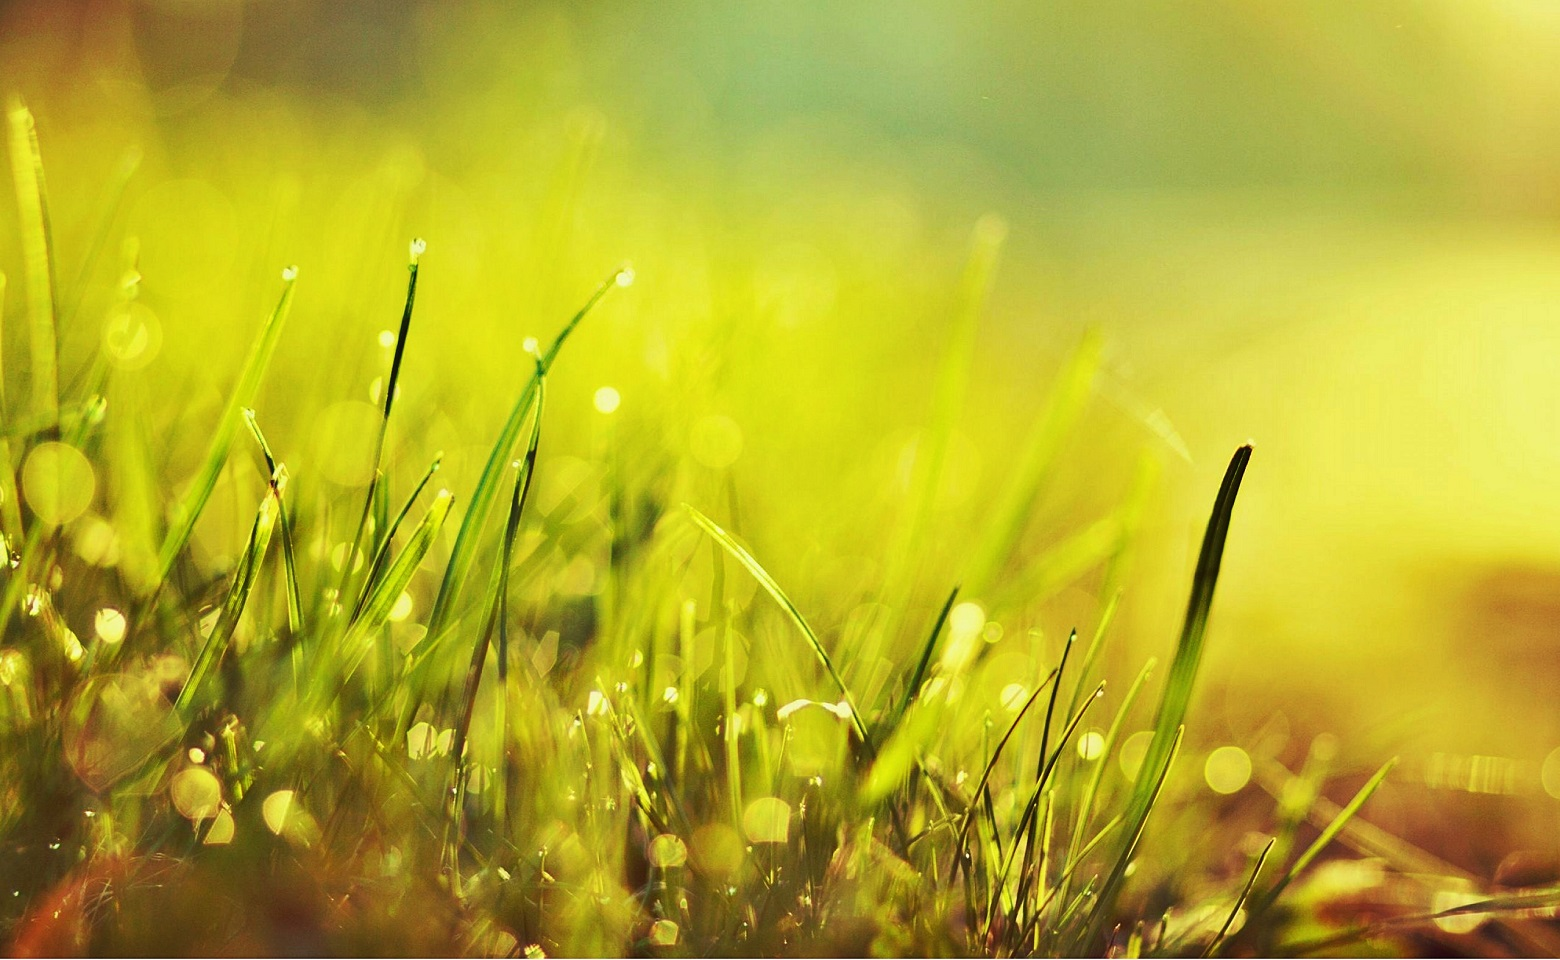 grass-morning-sunrise-drops-dew-nature-1920x2560